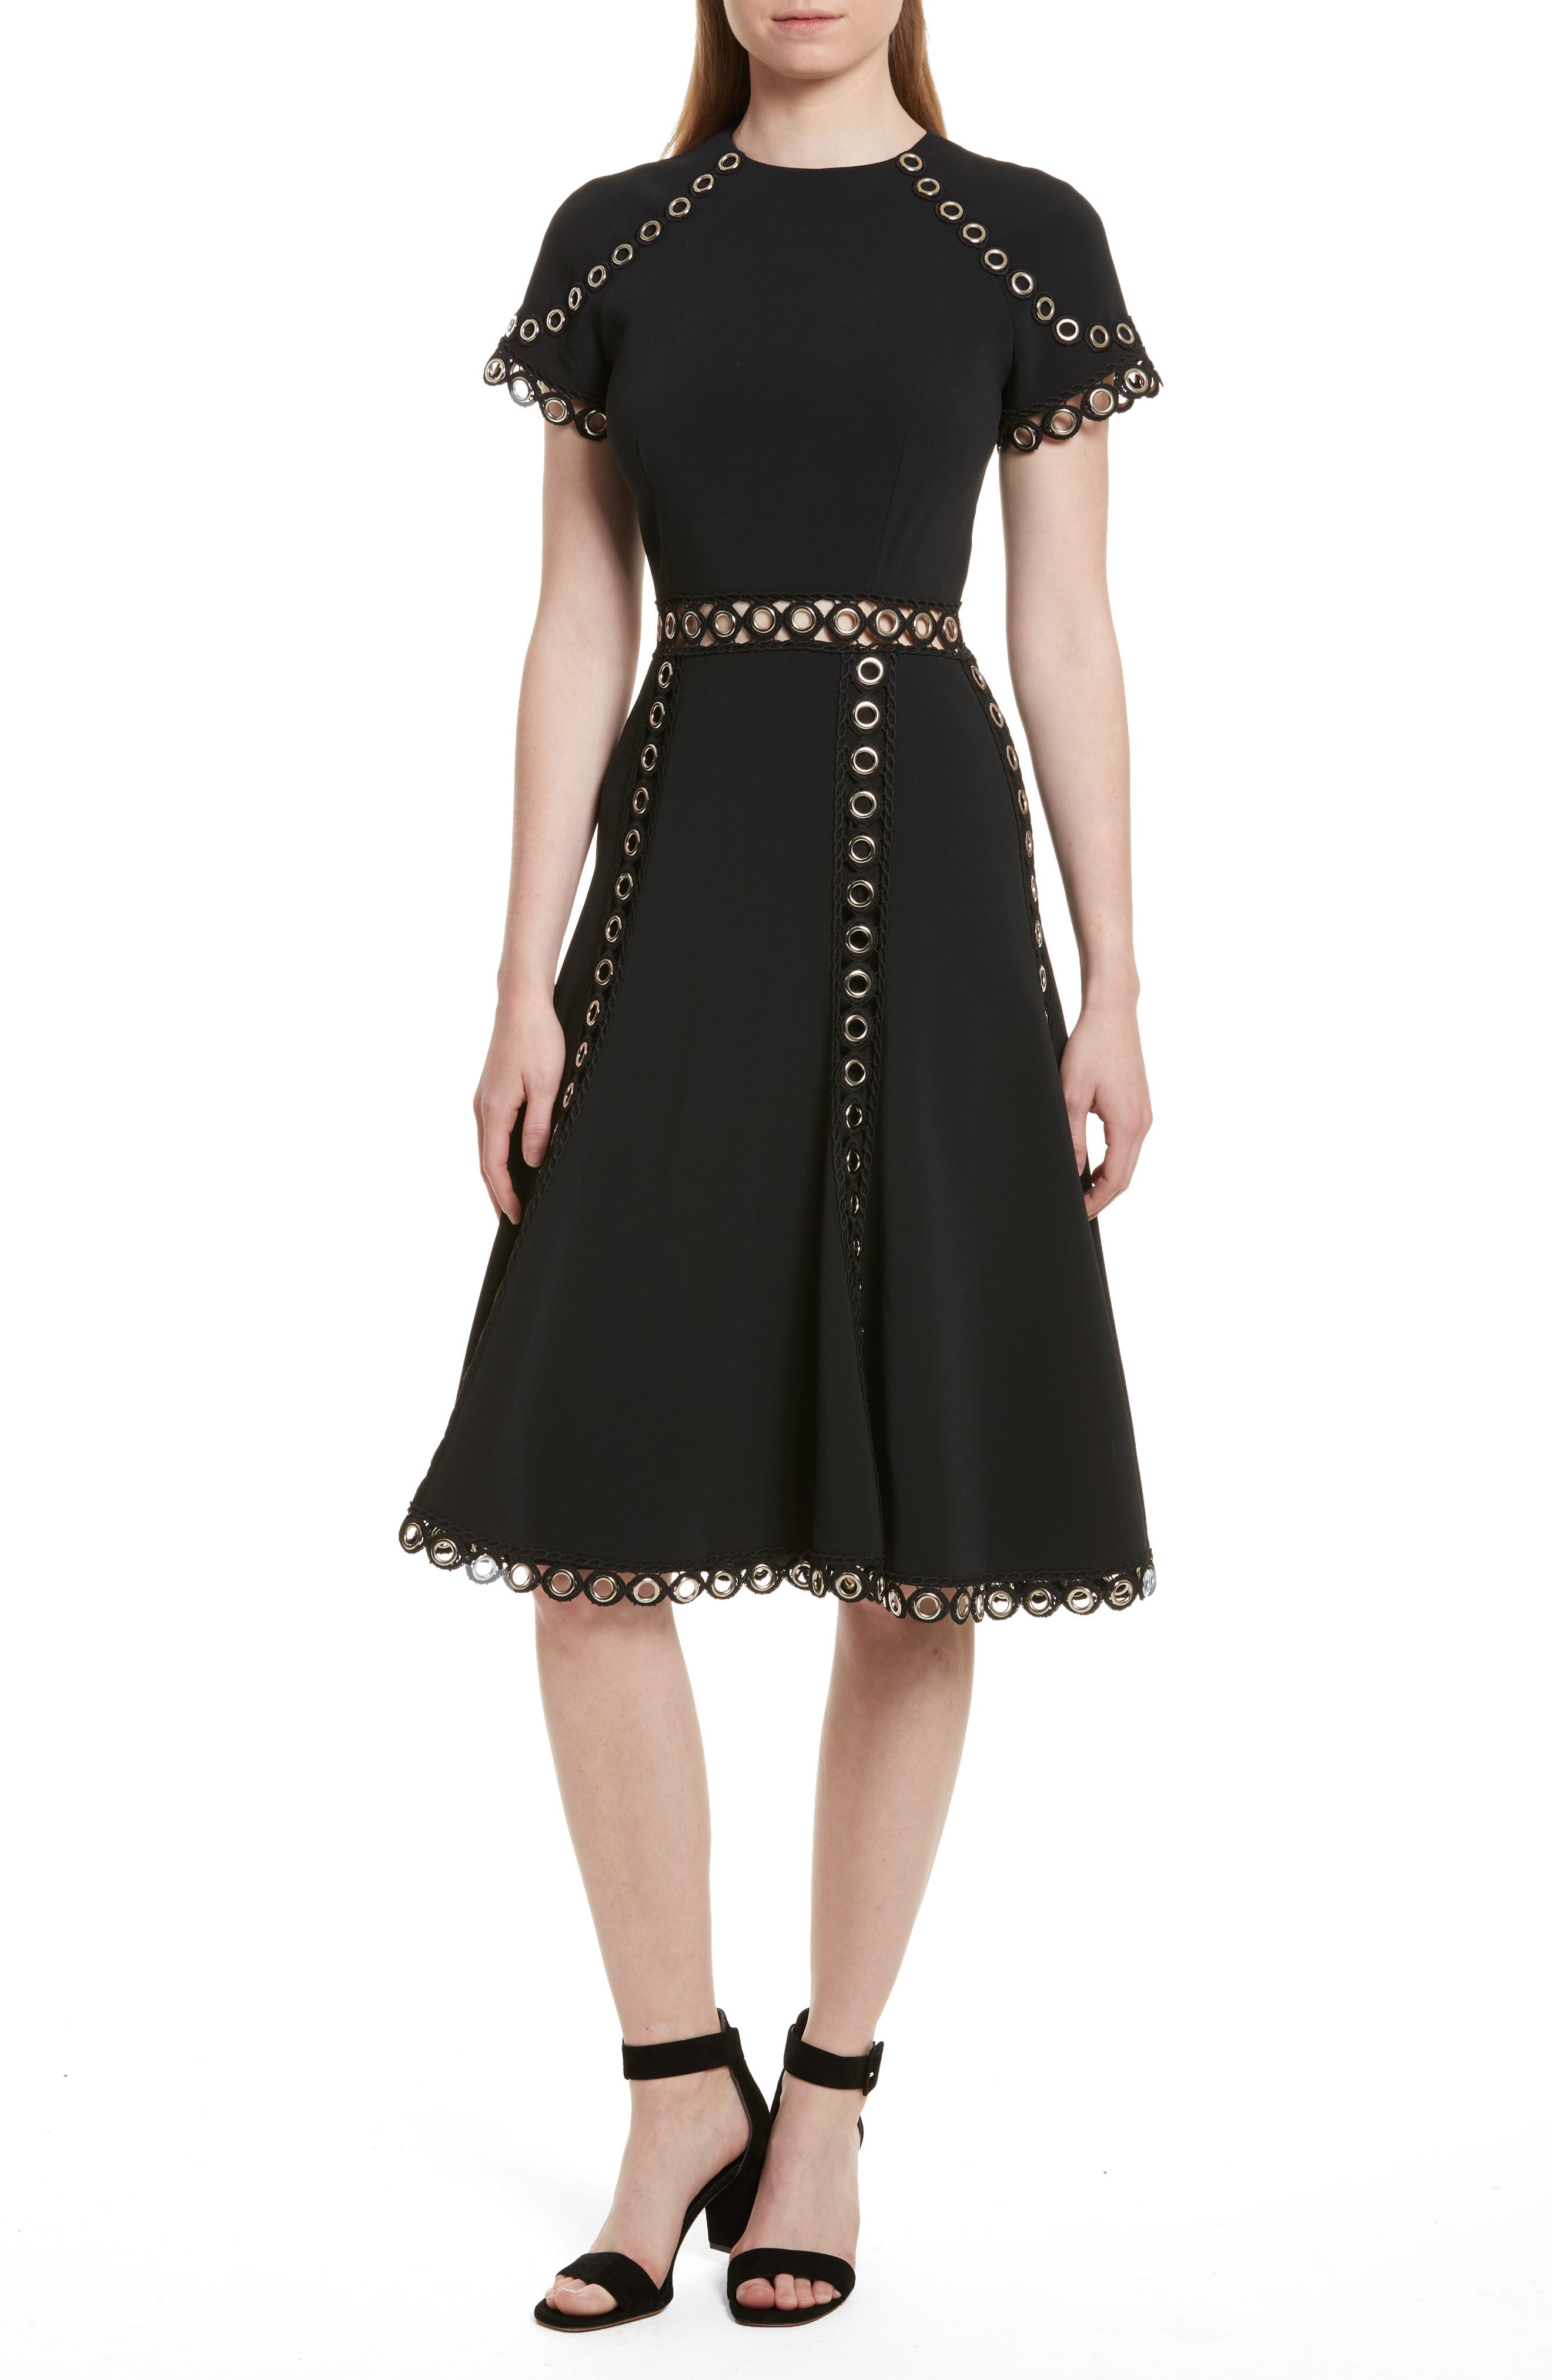 Alternate Image 1 Selected - Jonathan Simkhai Grommet Fit & Flare Dress